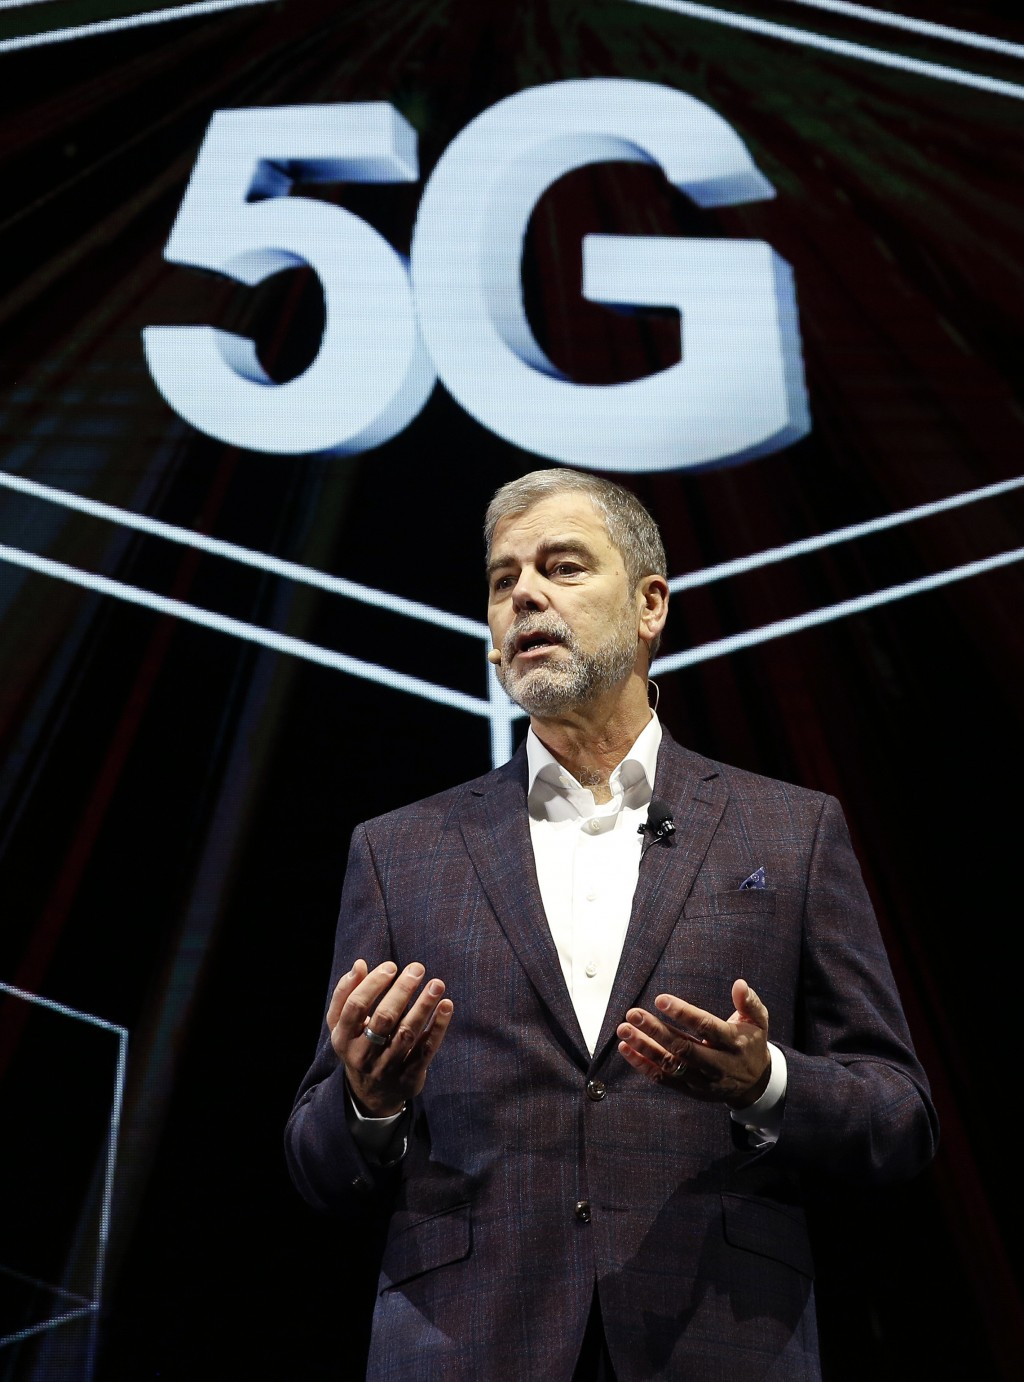 FILE - In this Jan. 7, 2019 file photo David VanderWaal, vice president of marketing for LG Electronics USA, speaks about 5G during an LG news confere...